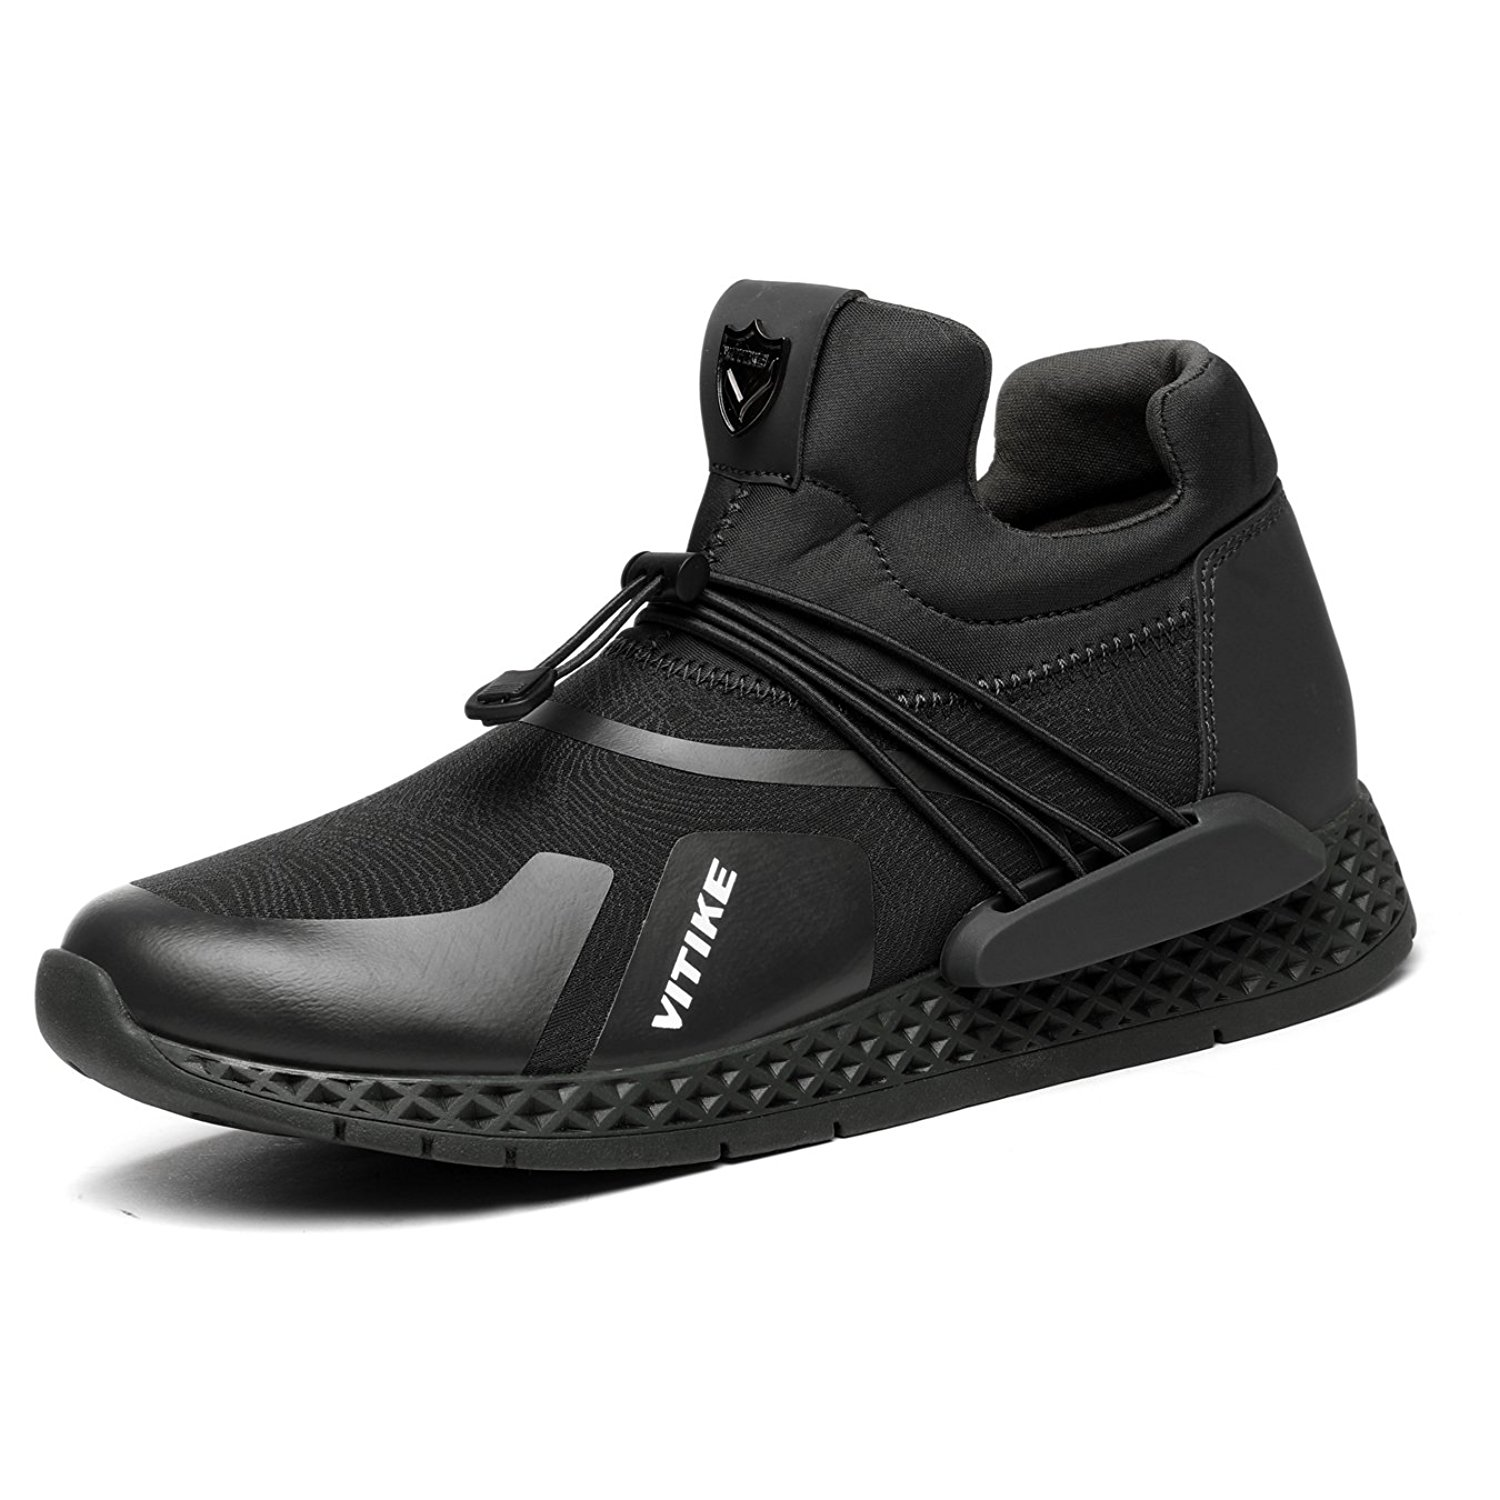 782dde76527b8 Cheap Easy Sport Shoes, find Easy Sport Shoes deals on line at ...